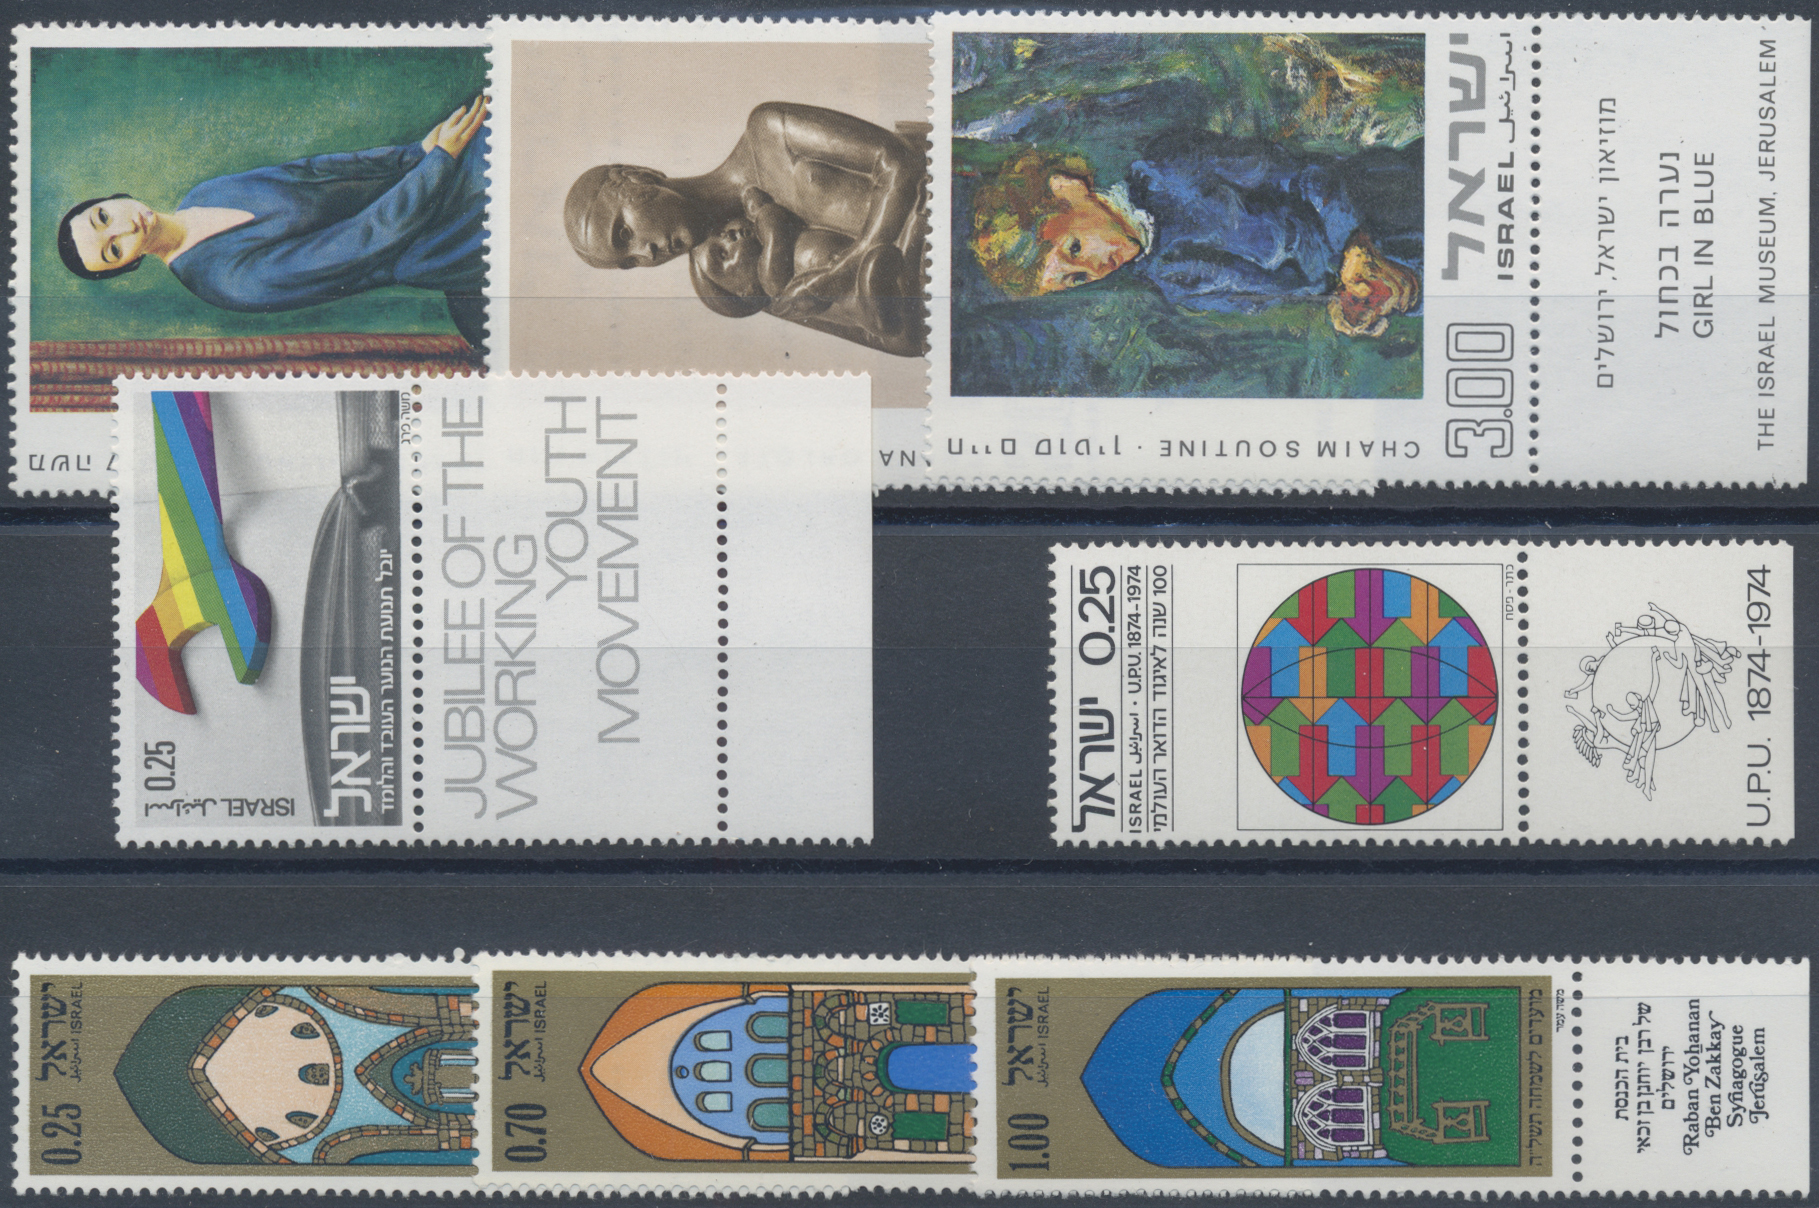 Lot 26771 - Israel  -  Auktionshaus Christoph Gärtner GmbH & Co. KG Sale #46 Gollcetions Germany - including the suplement